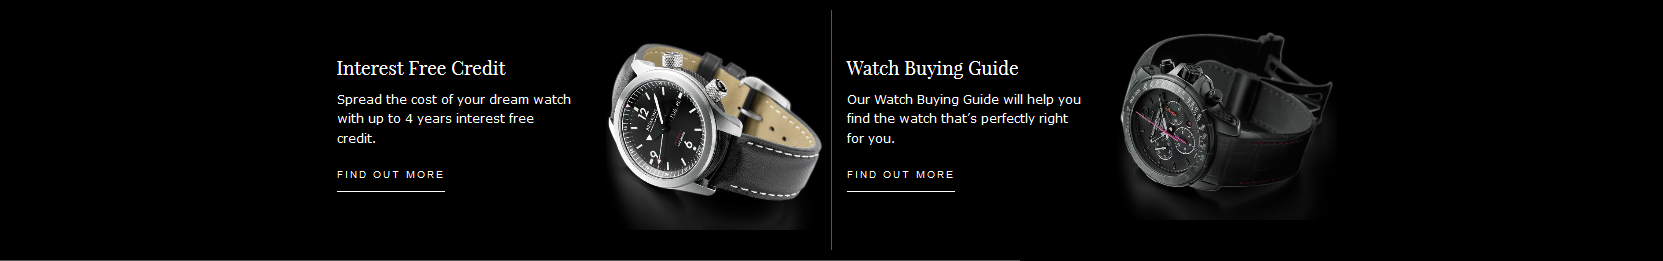 Screenshot-2018-2-3 Watches That Changed The World Beaverbrooks the Jewellers(7).png